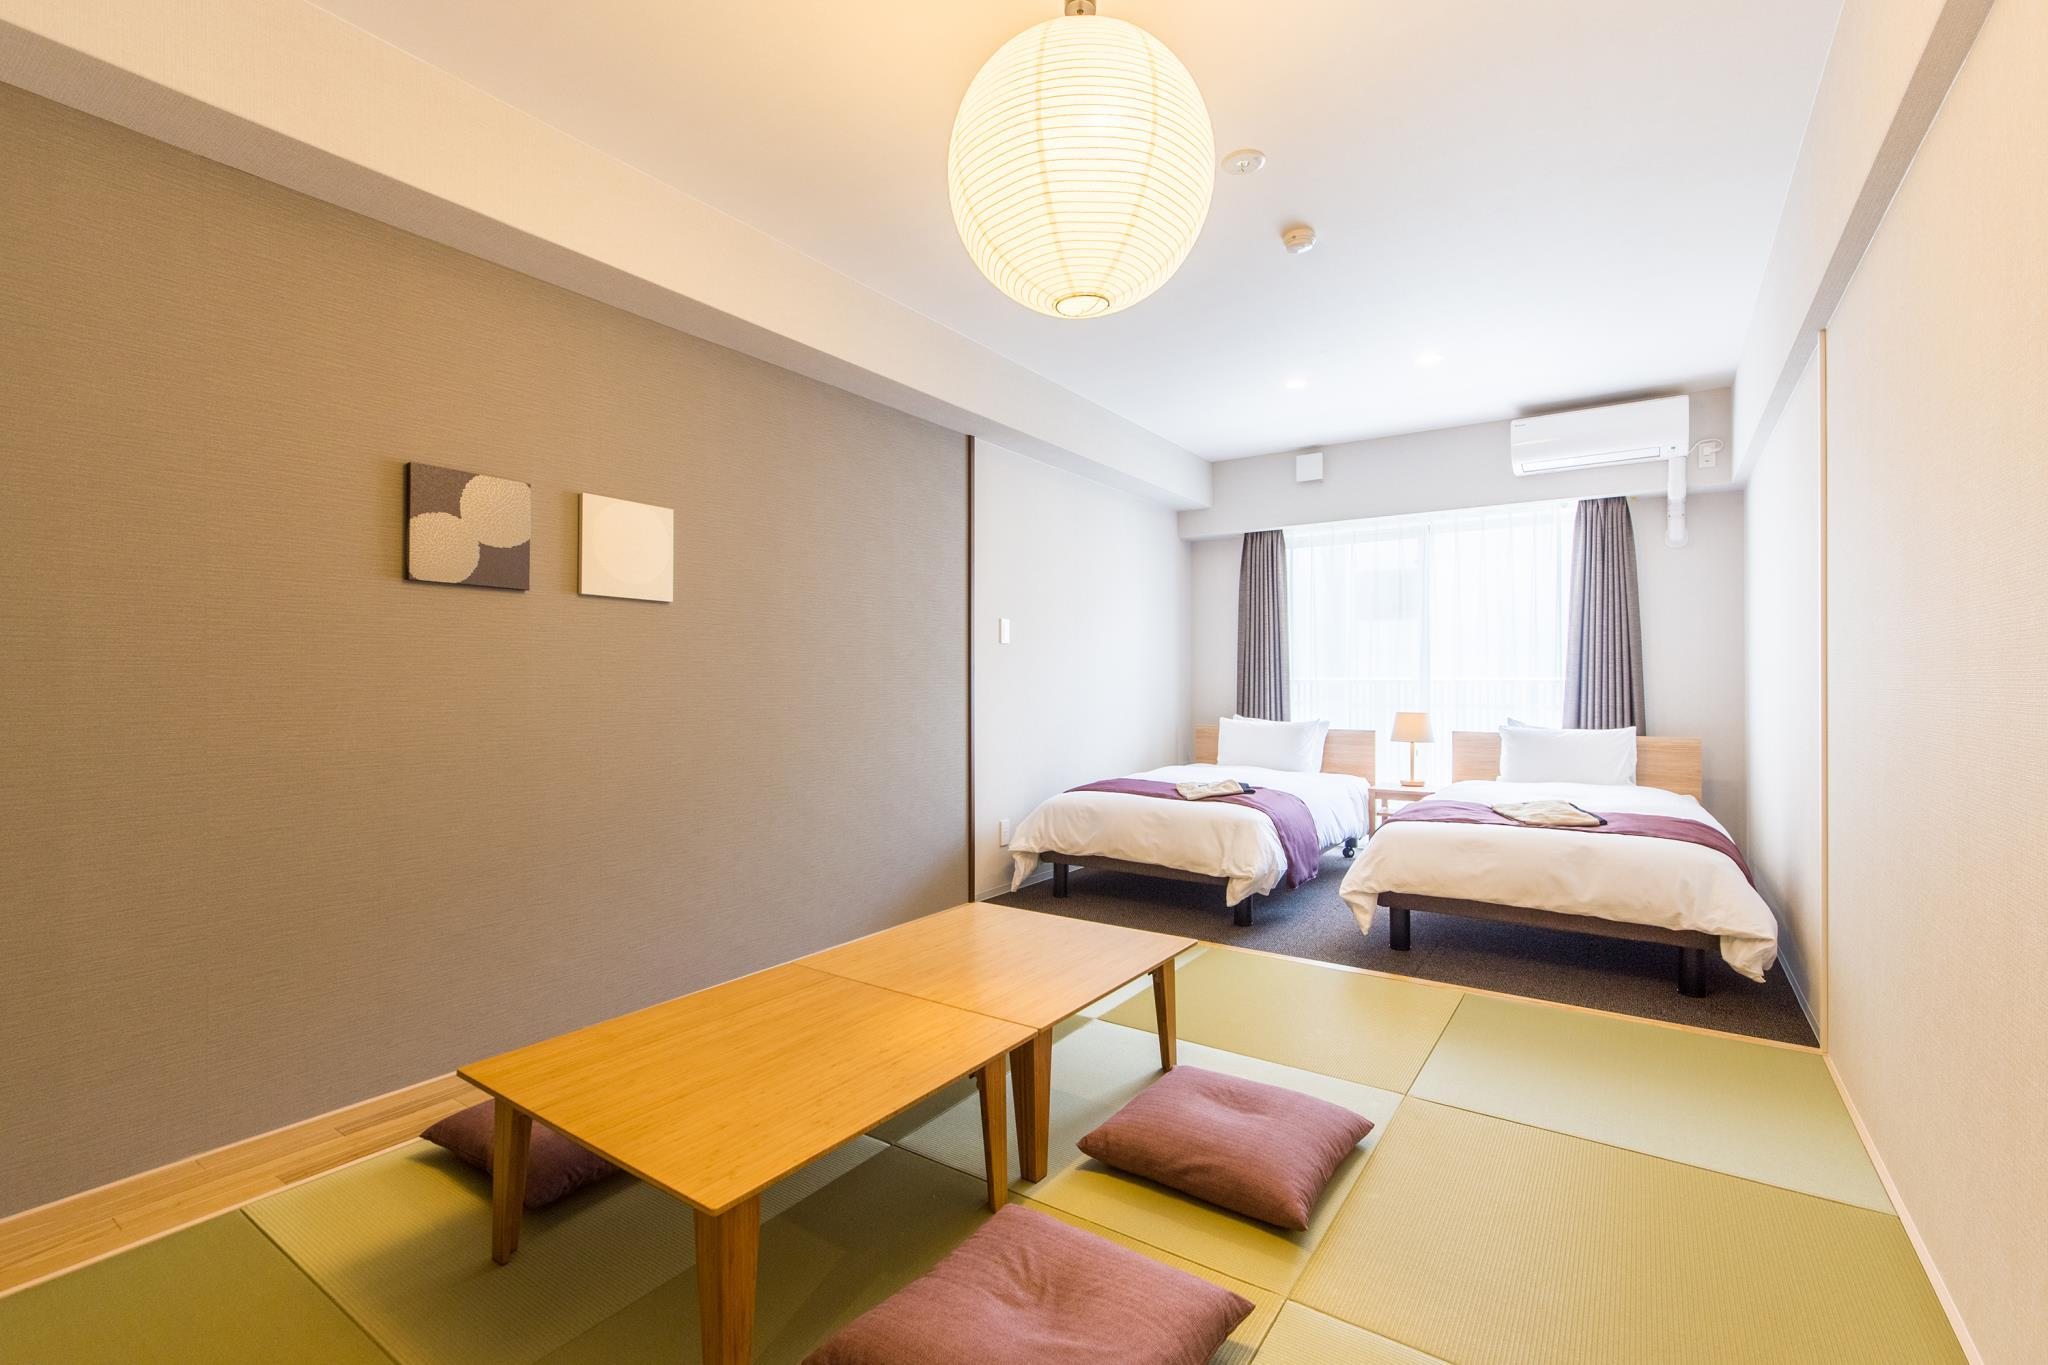 Deluxe Japanese Style Room for 4 People